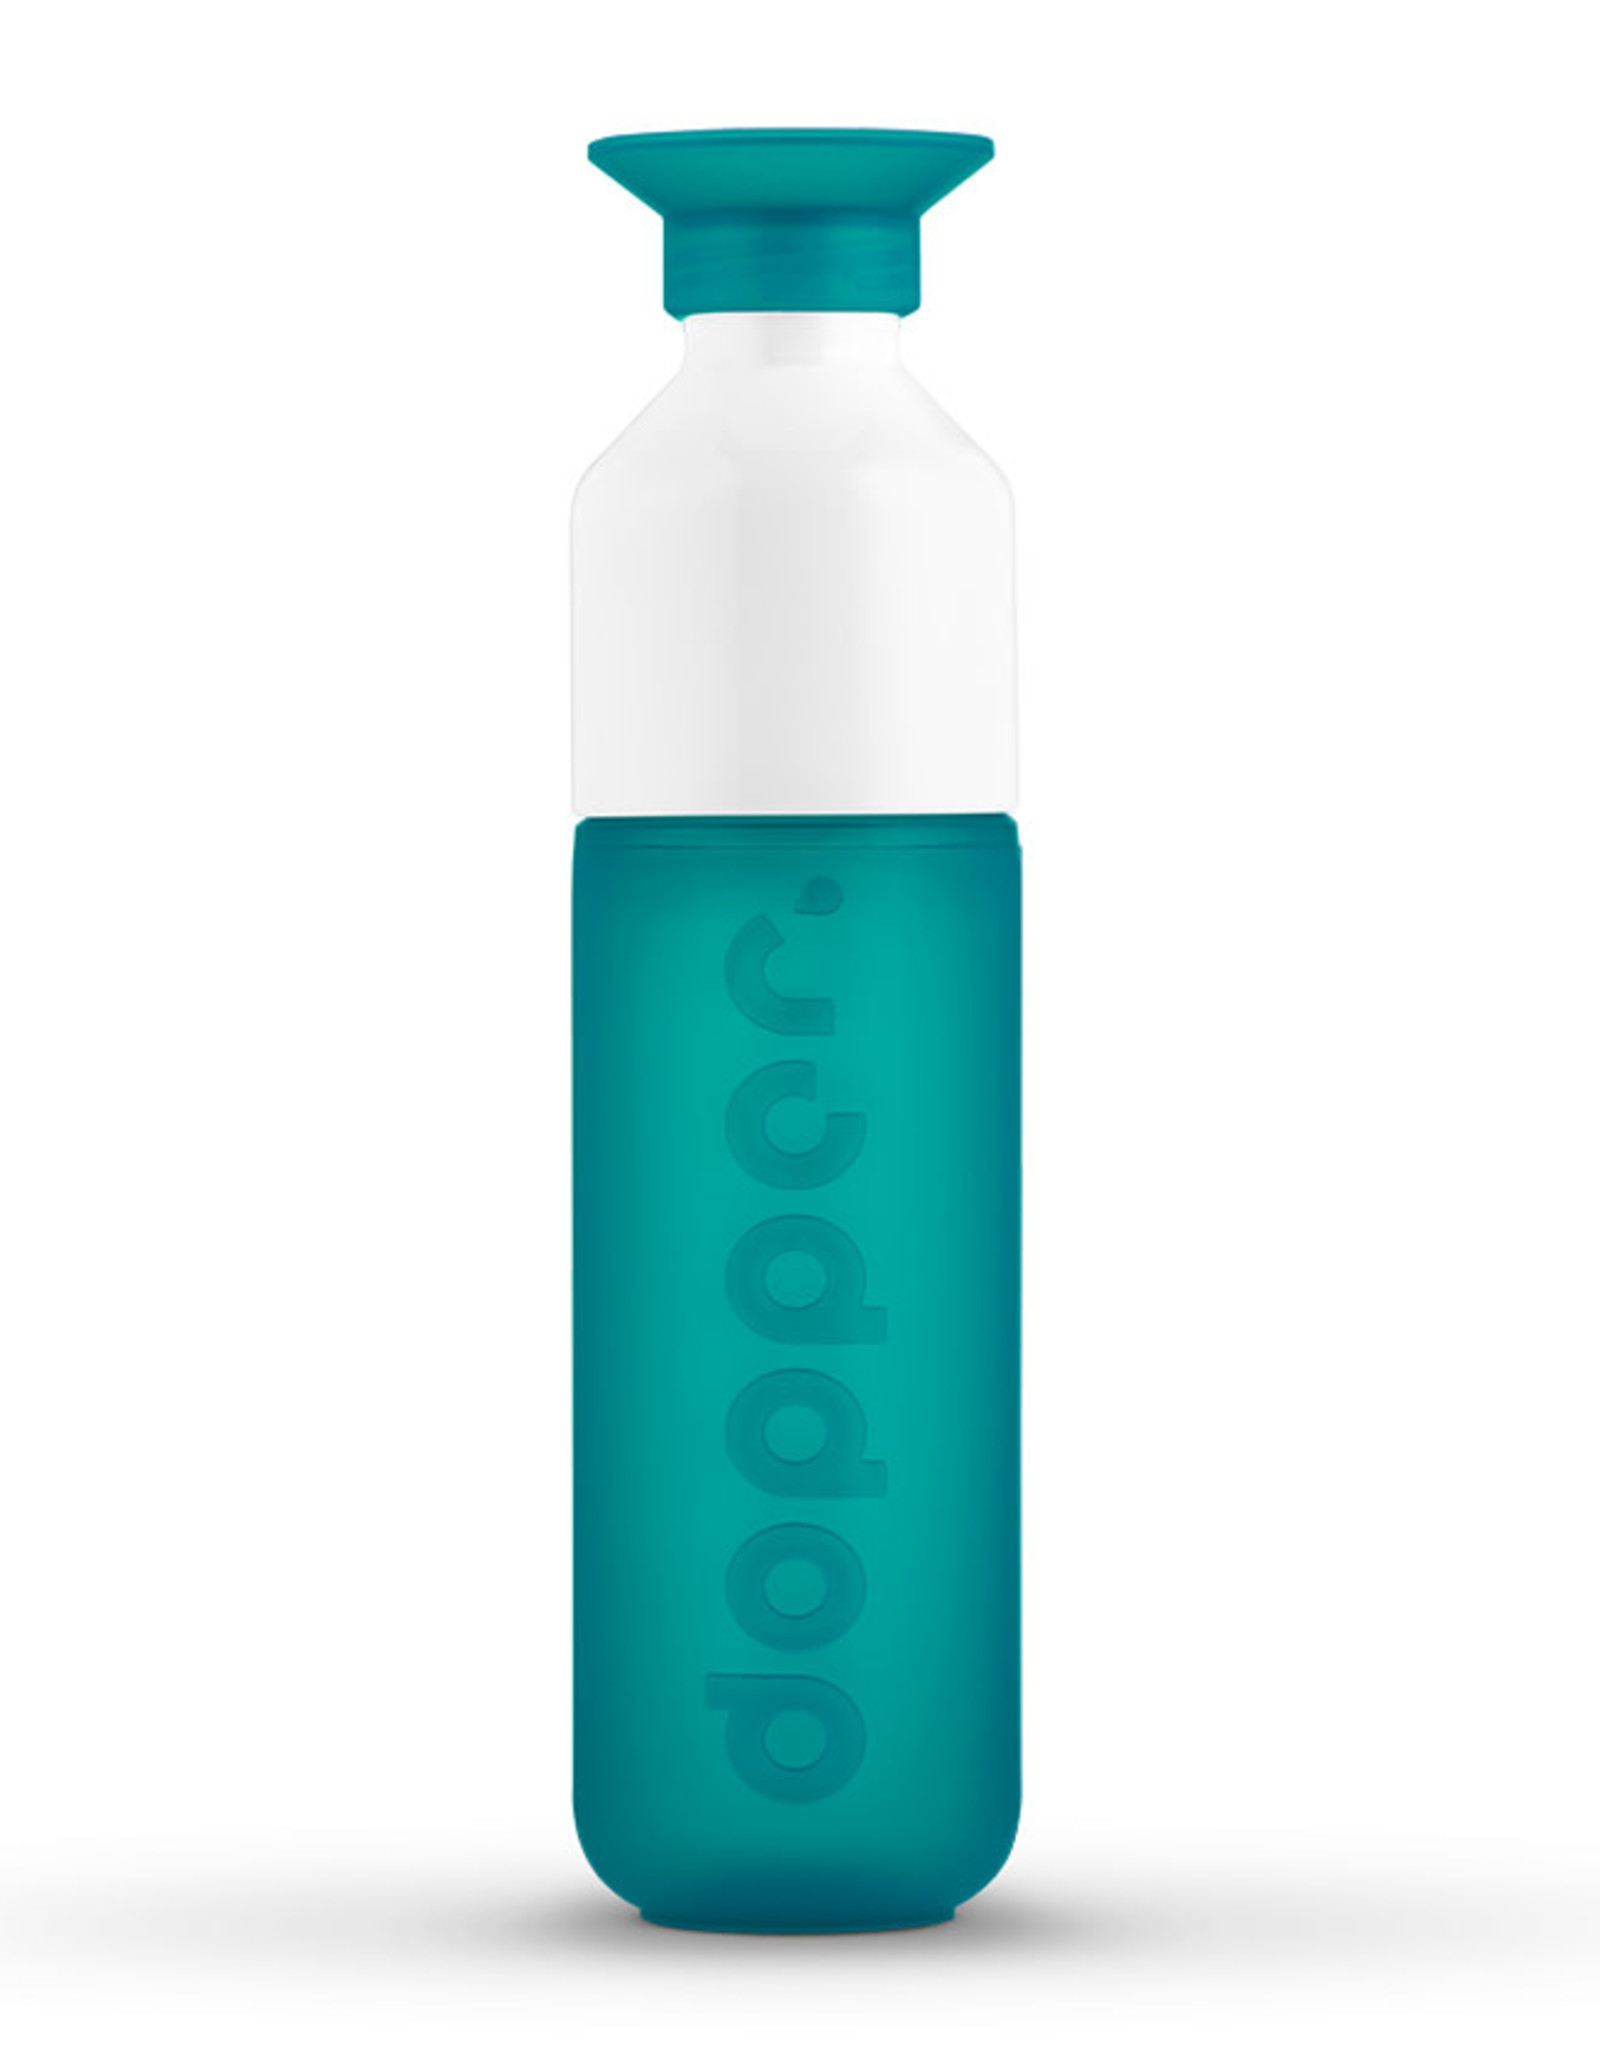 Dopper Dopper Original 450ml Tidal Teal-dark turqoise